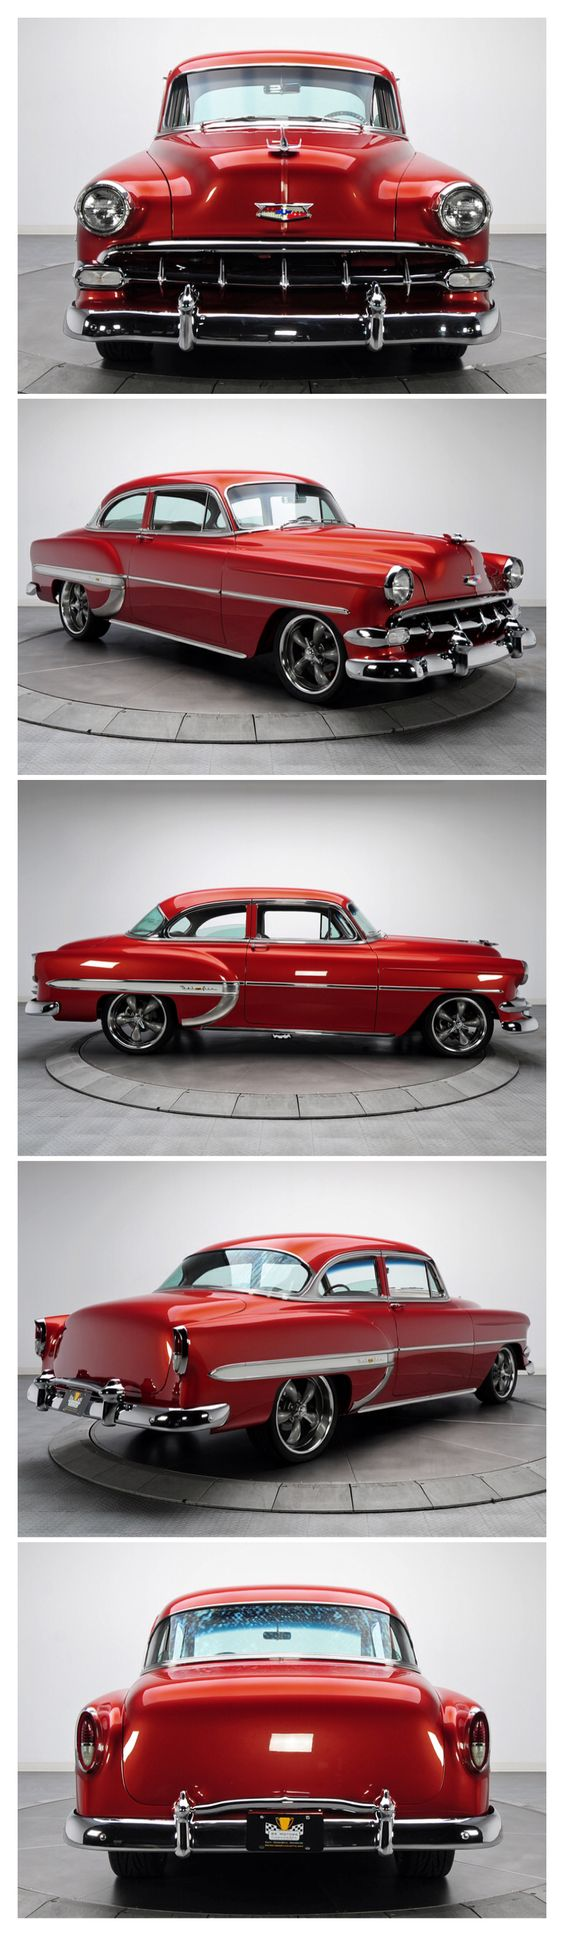 """1954 Chevrolet Bel Air-Not quite the """"Tri-Five"""", but still a beautiful car and photographs."""